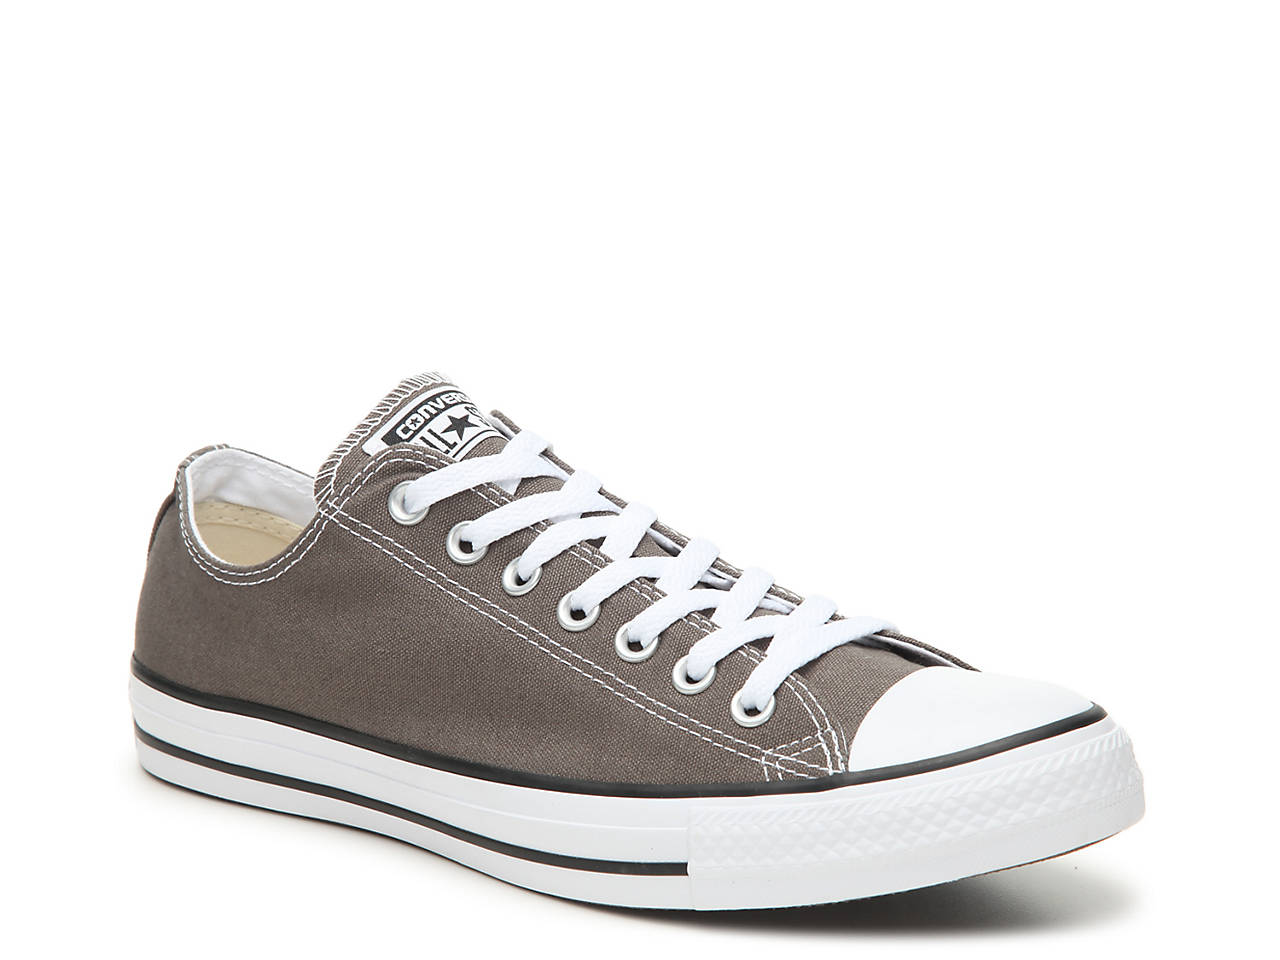 50389a01be8 Converse Chuck Taylor All Star Seasonal Ox Sneaker - Men s Men s ...